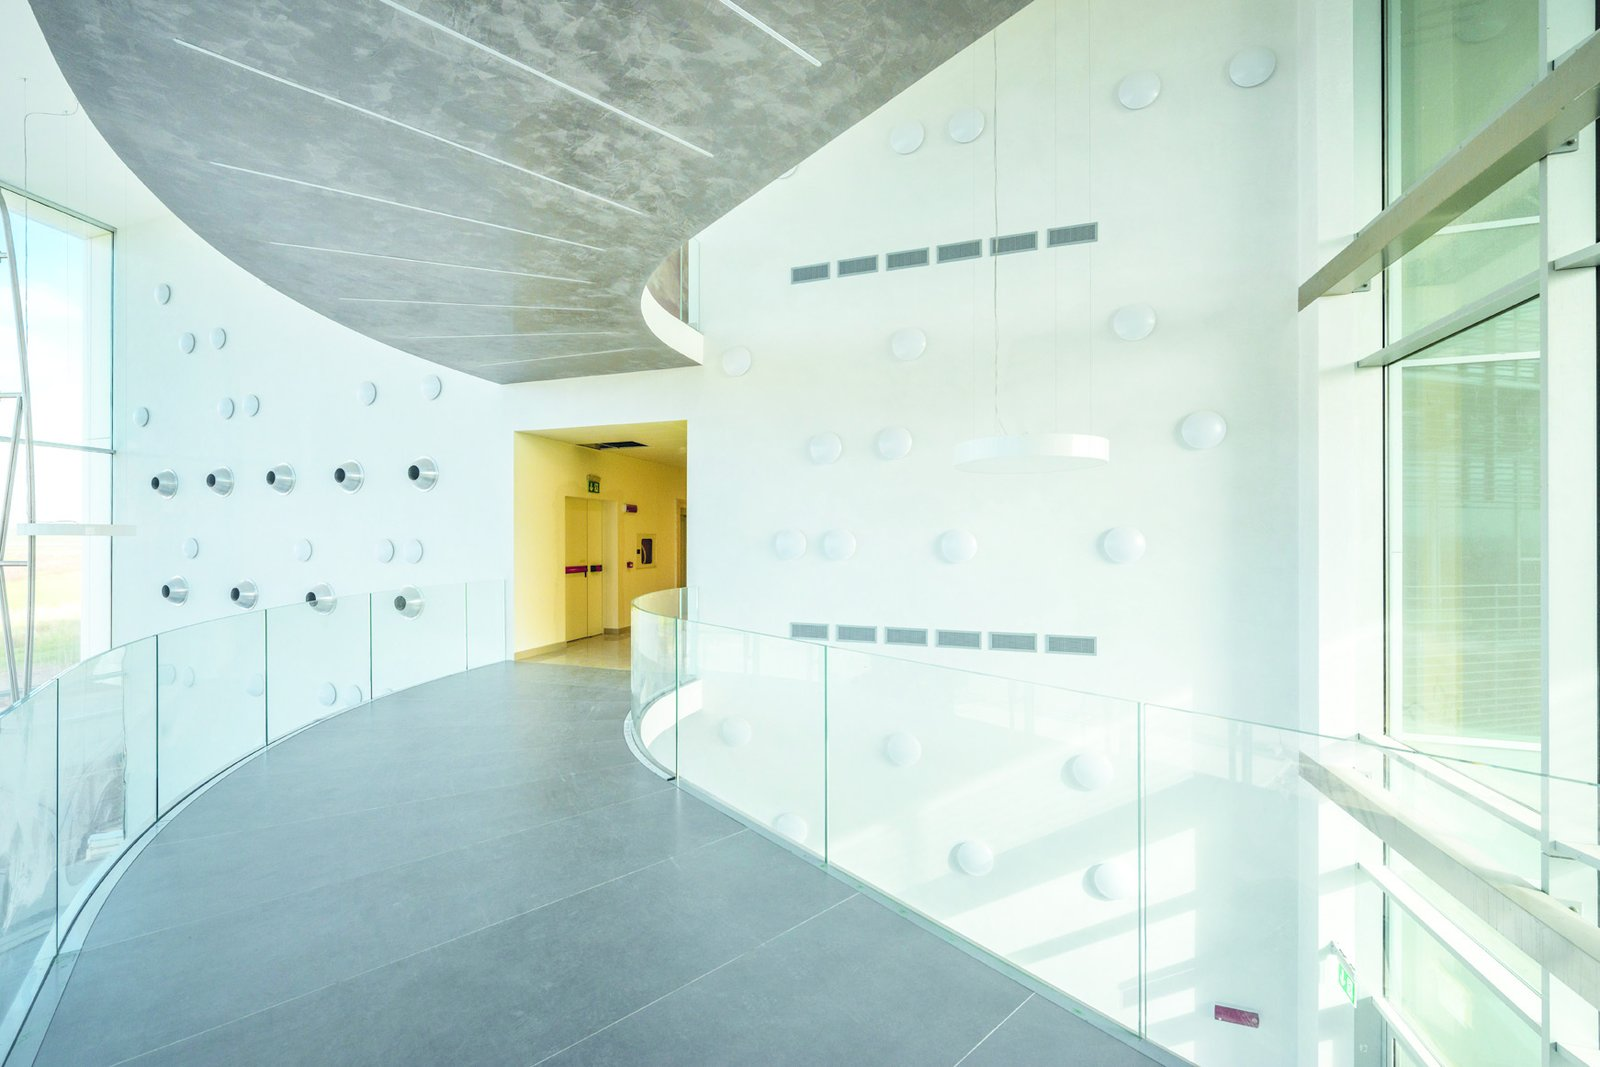 Photo 5 of 6 in A near-to-zero-emission, LEED Gold Office Building in Tuscany